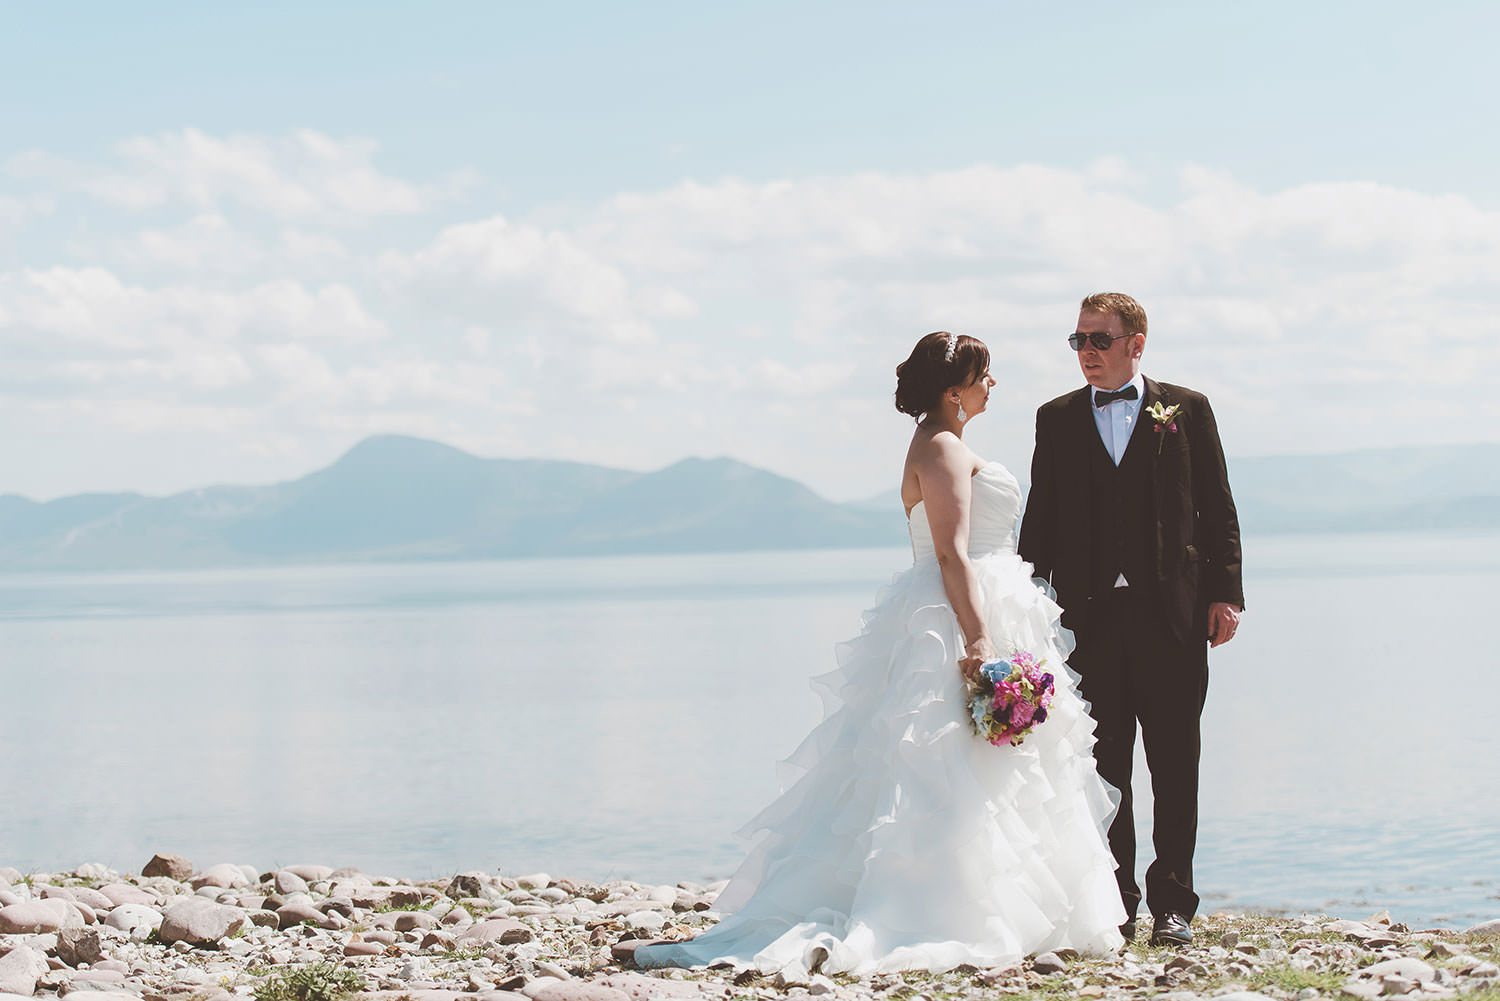 wedding-photographers-ireland-093.jpg